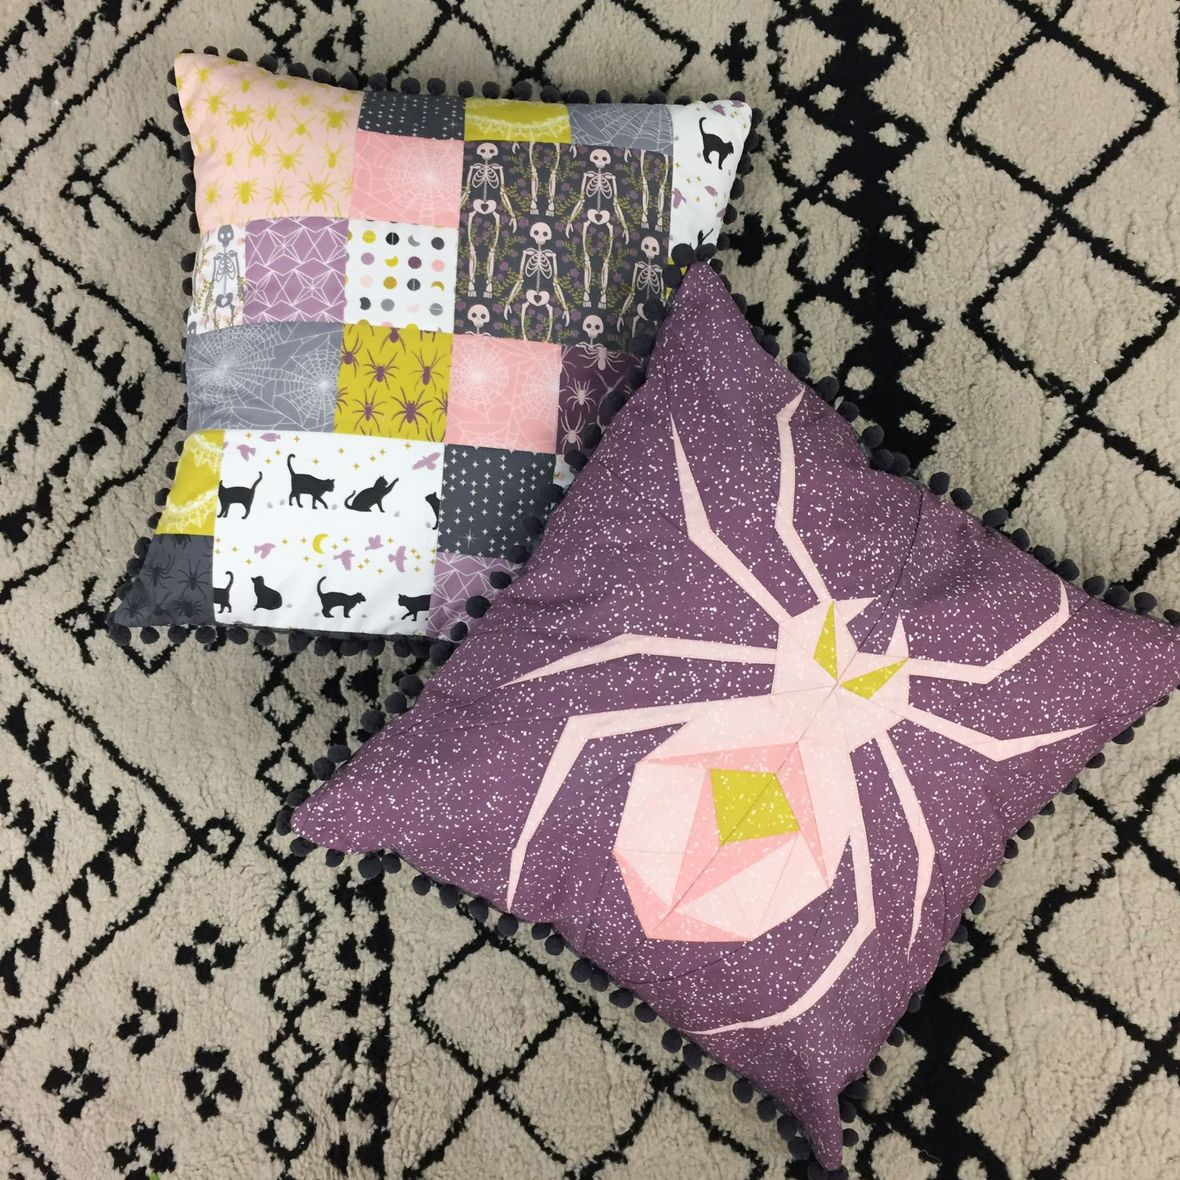 Nocturne Pillows